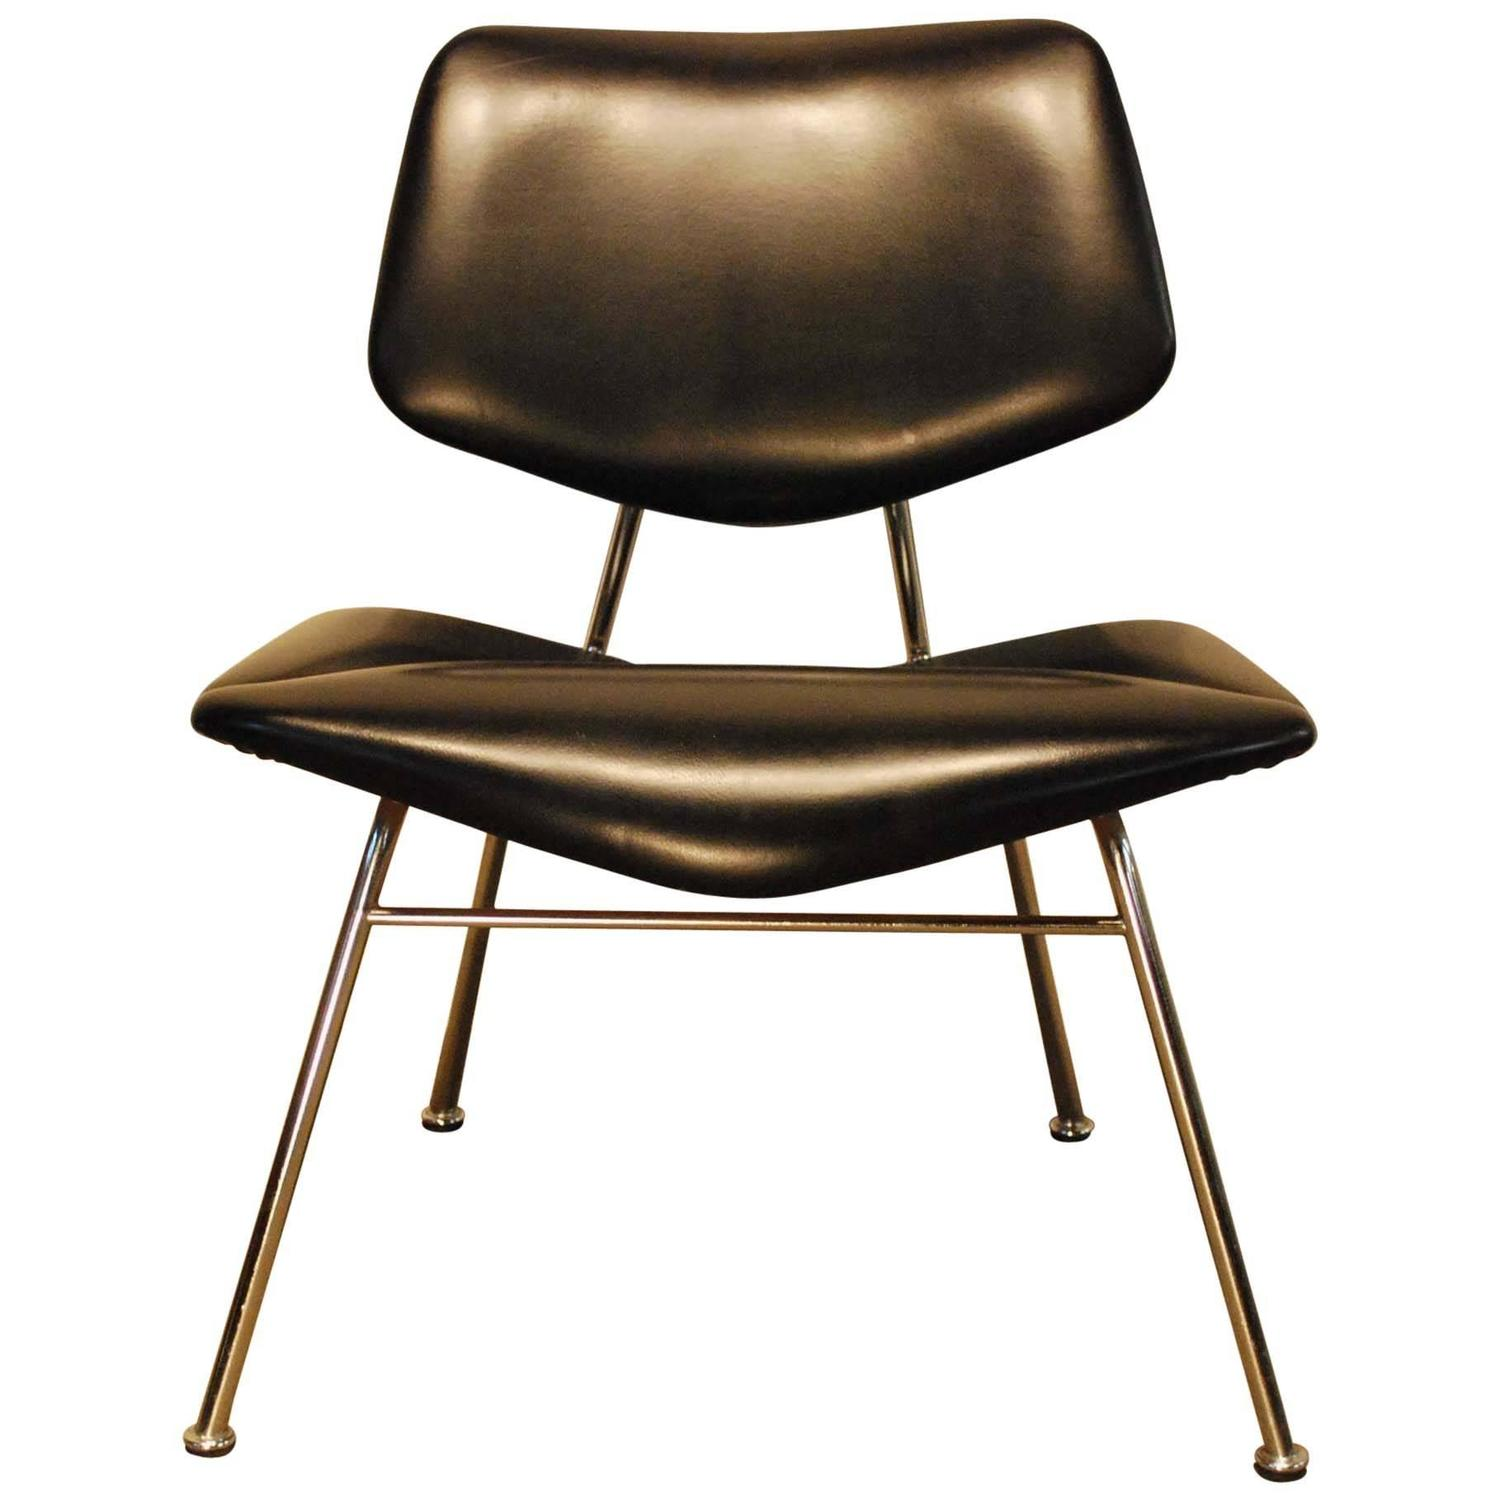 Mid century modern leather chrome designer chair at 1stdibs for Mid century modern leather chairs